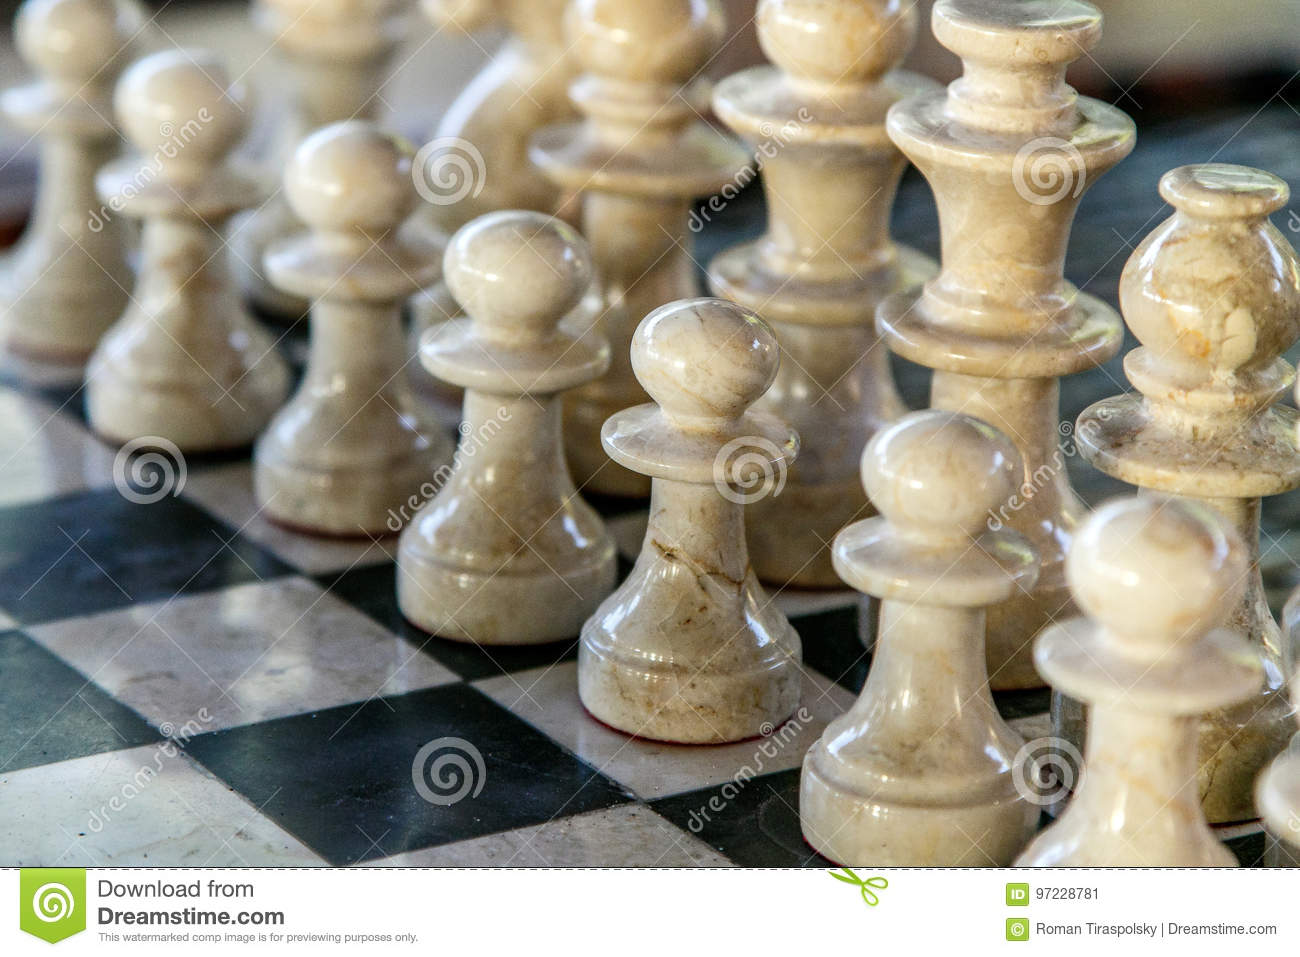 Stone carved chess pieces